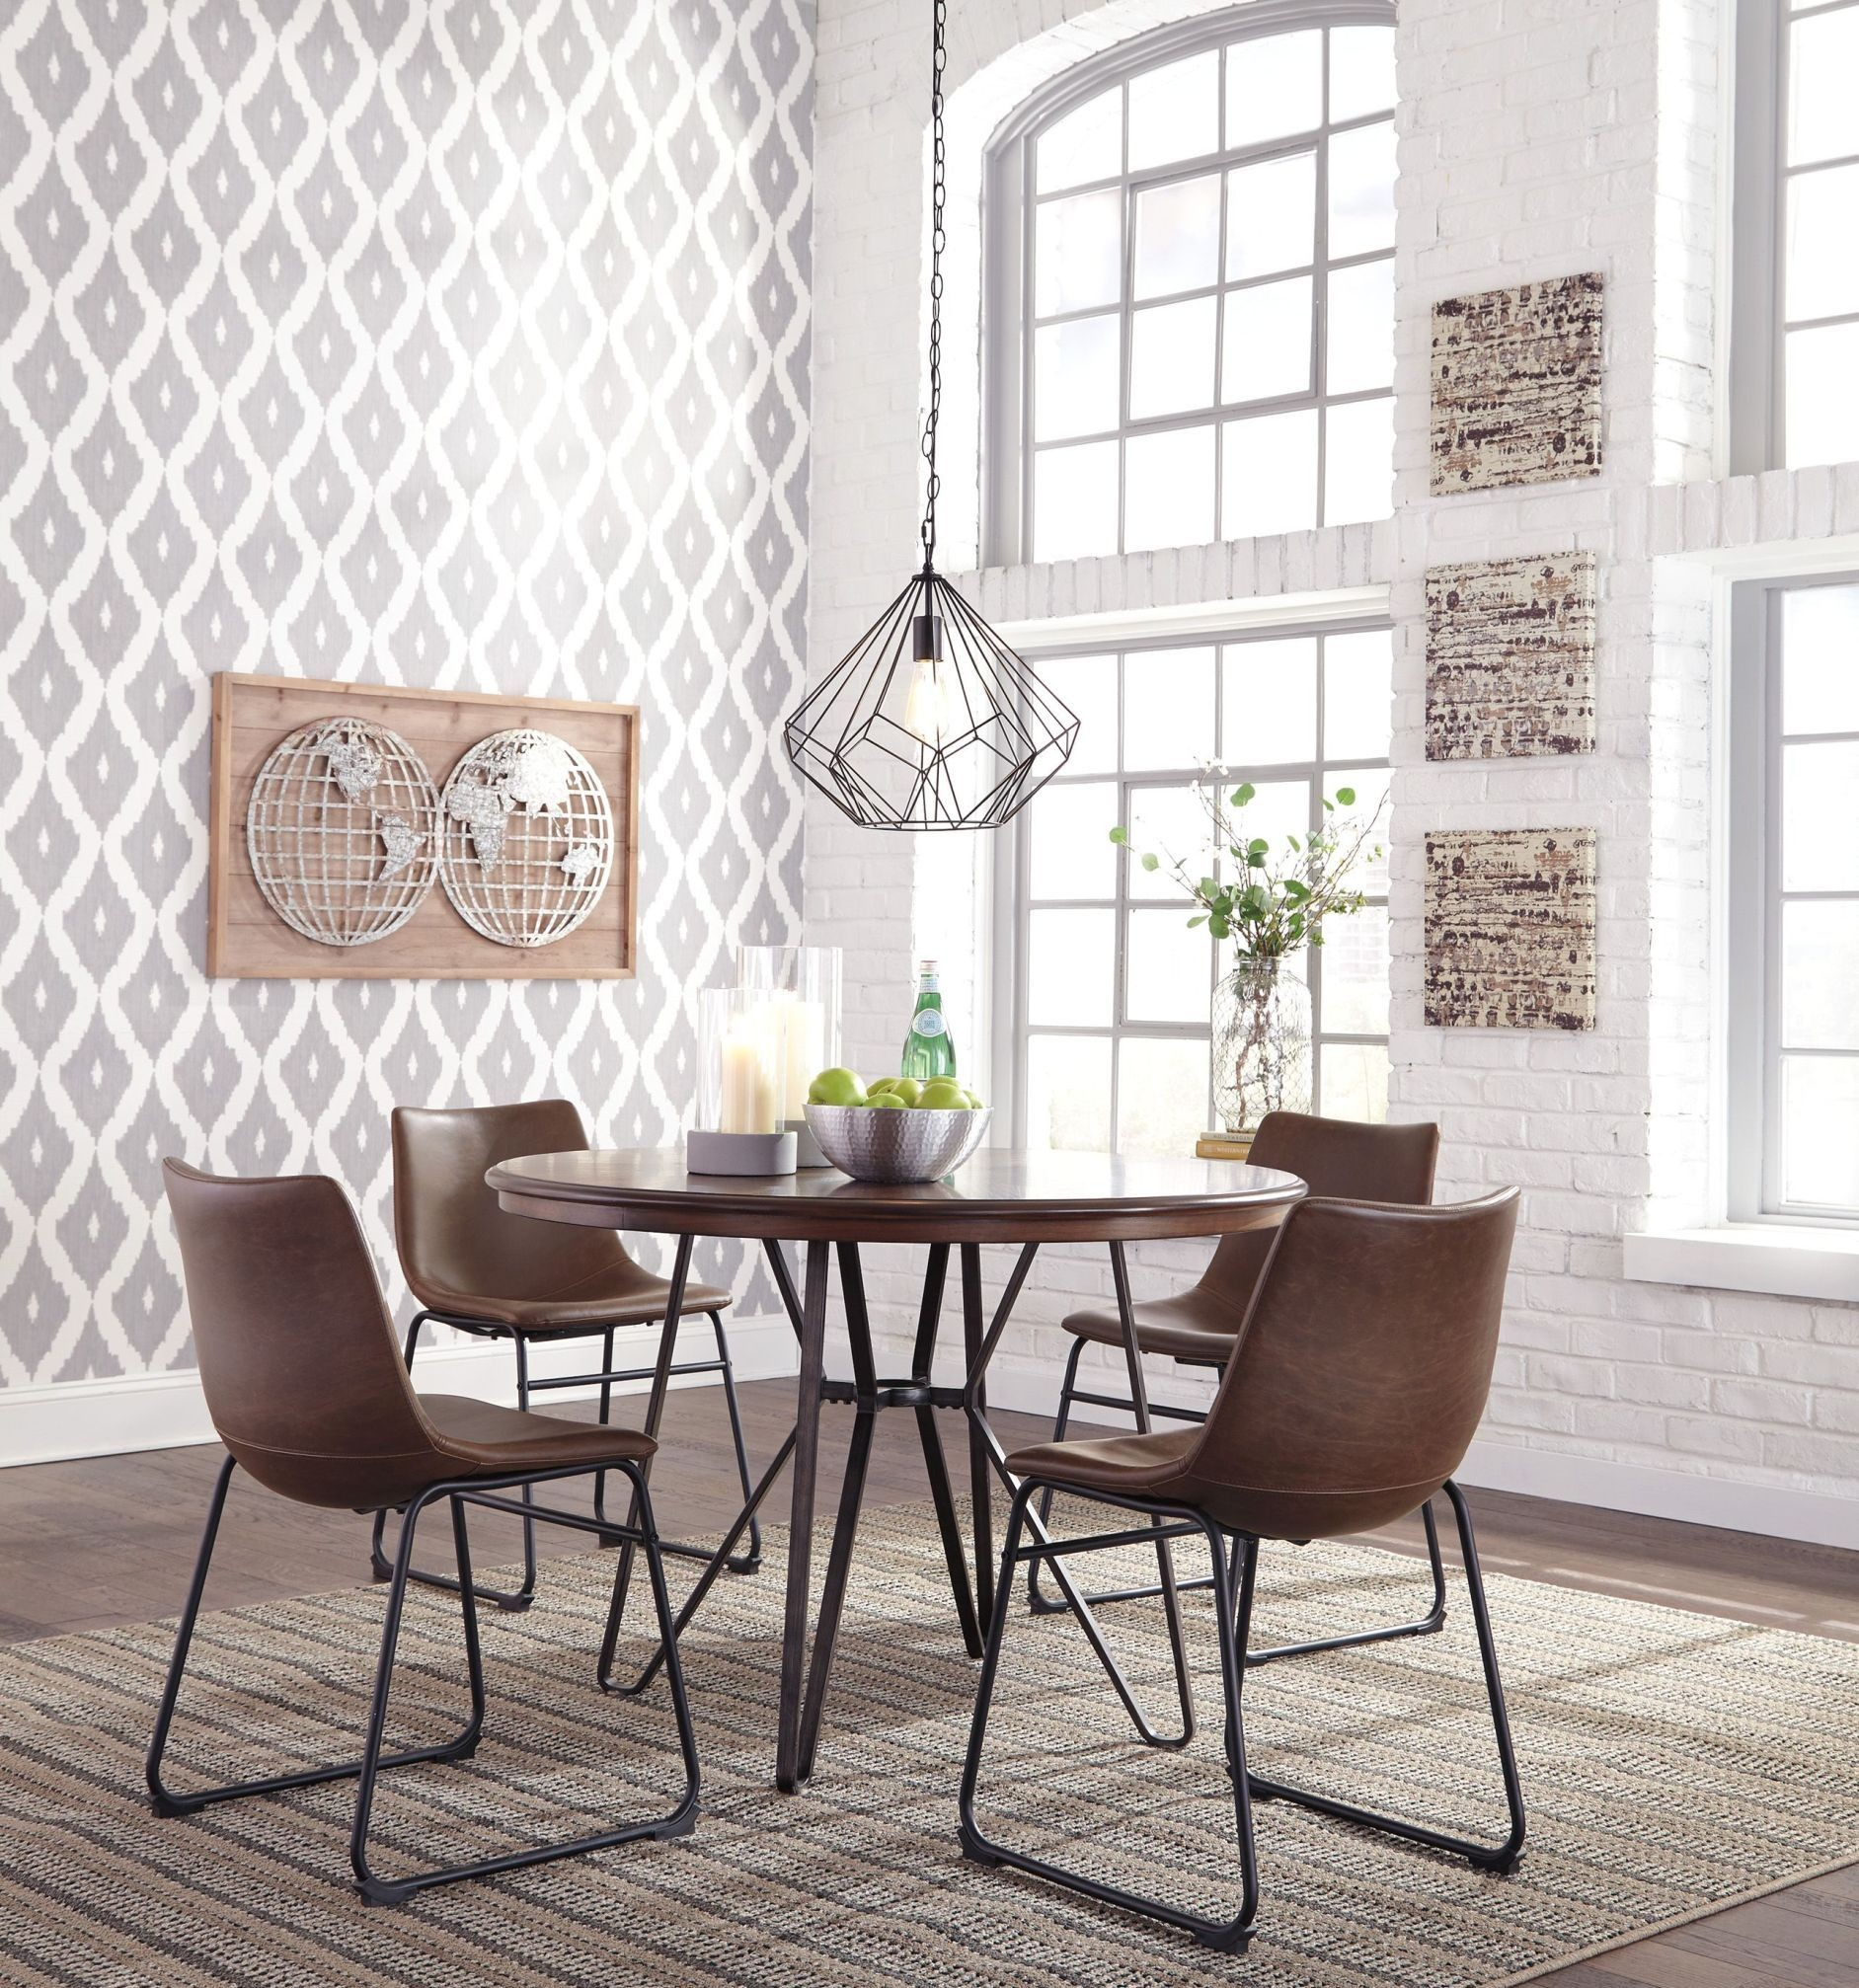 Centiar Two Tone Brown Round Dining Room Set D372 15 Ashley